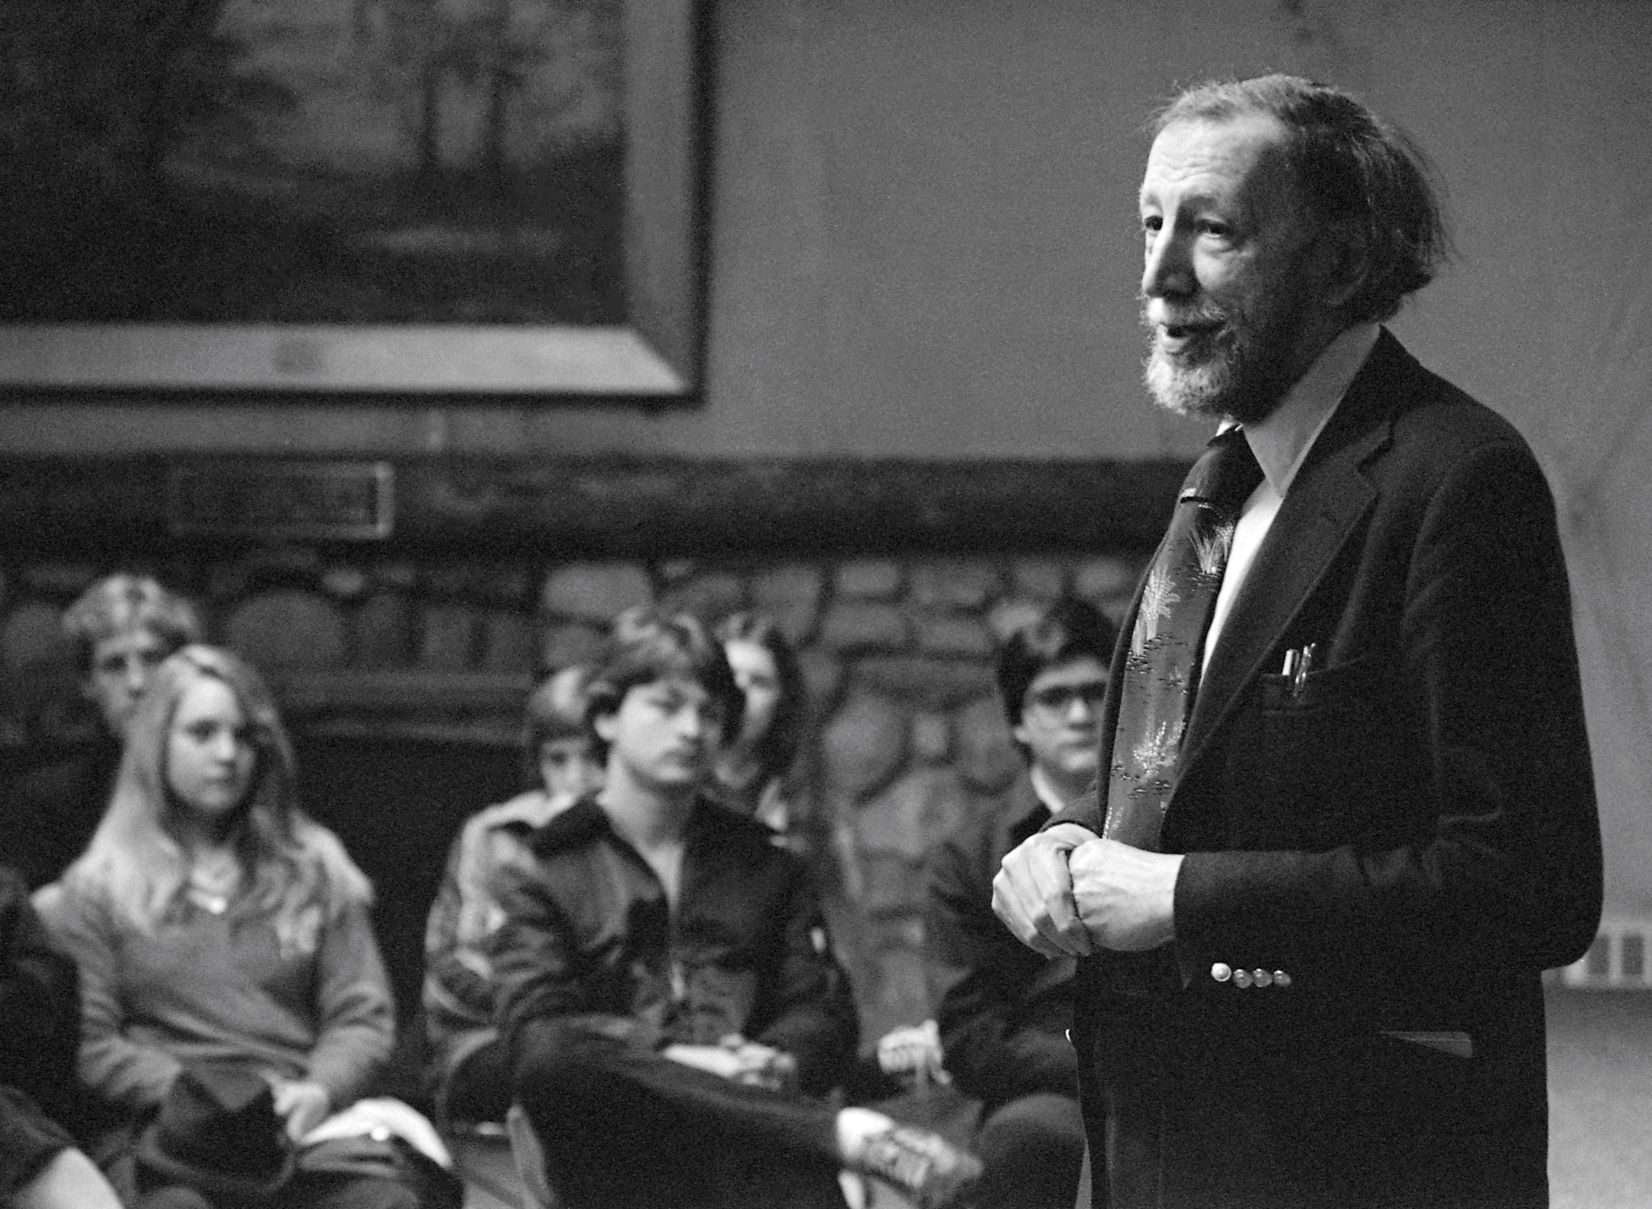 Caption: Alan Hovhaness works with Academy students in April 1982, Credit: Interlochen Center for the Arts